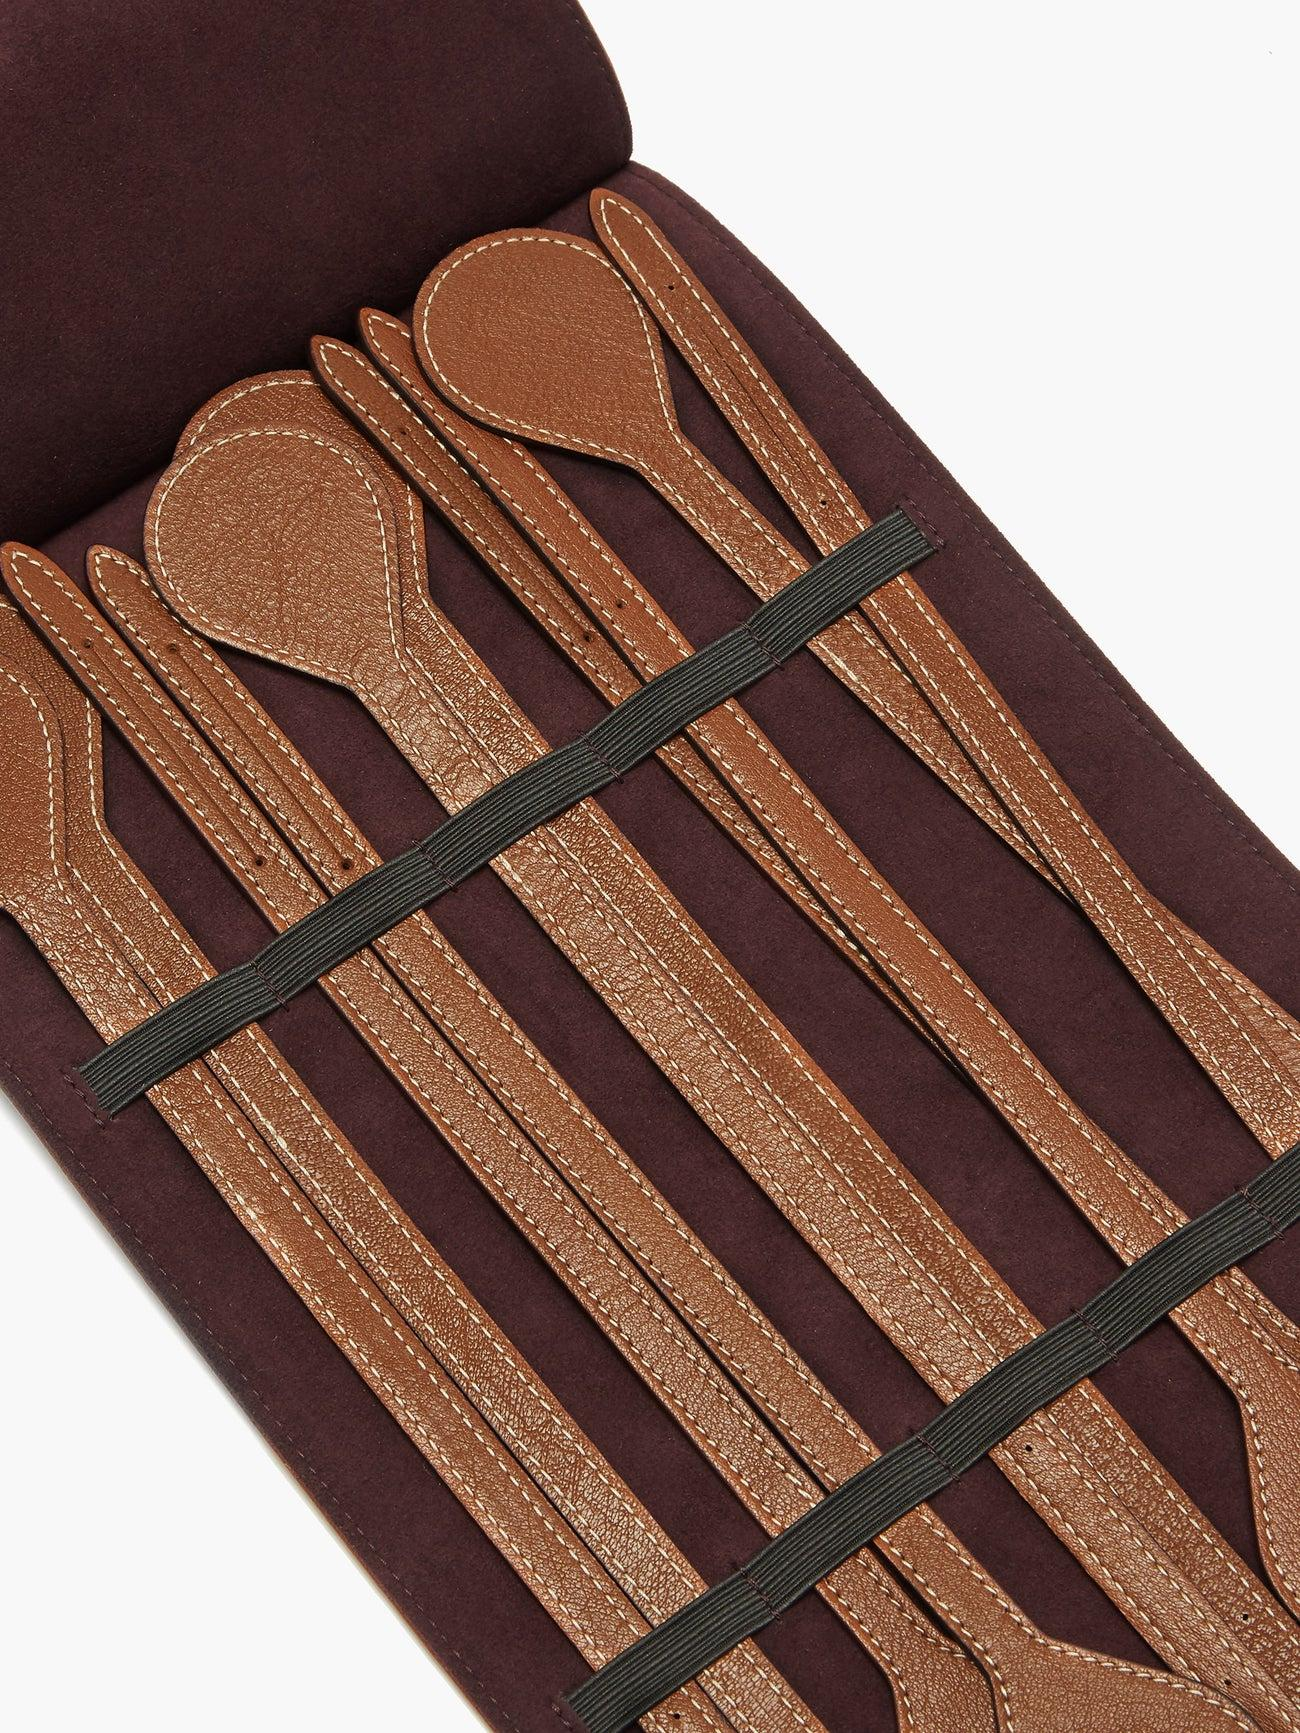 Leather napkin ties in a case